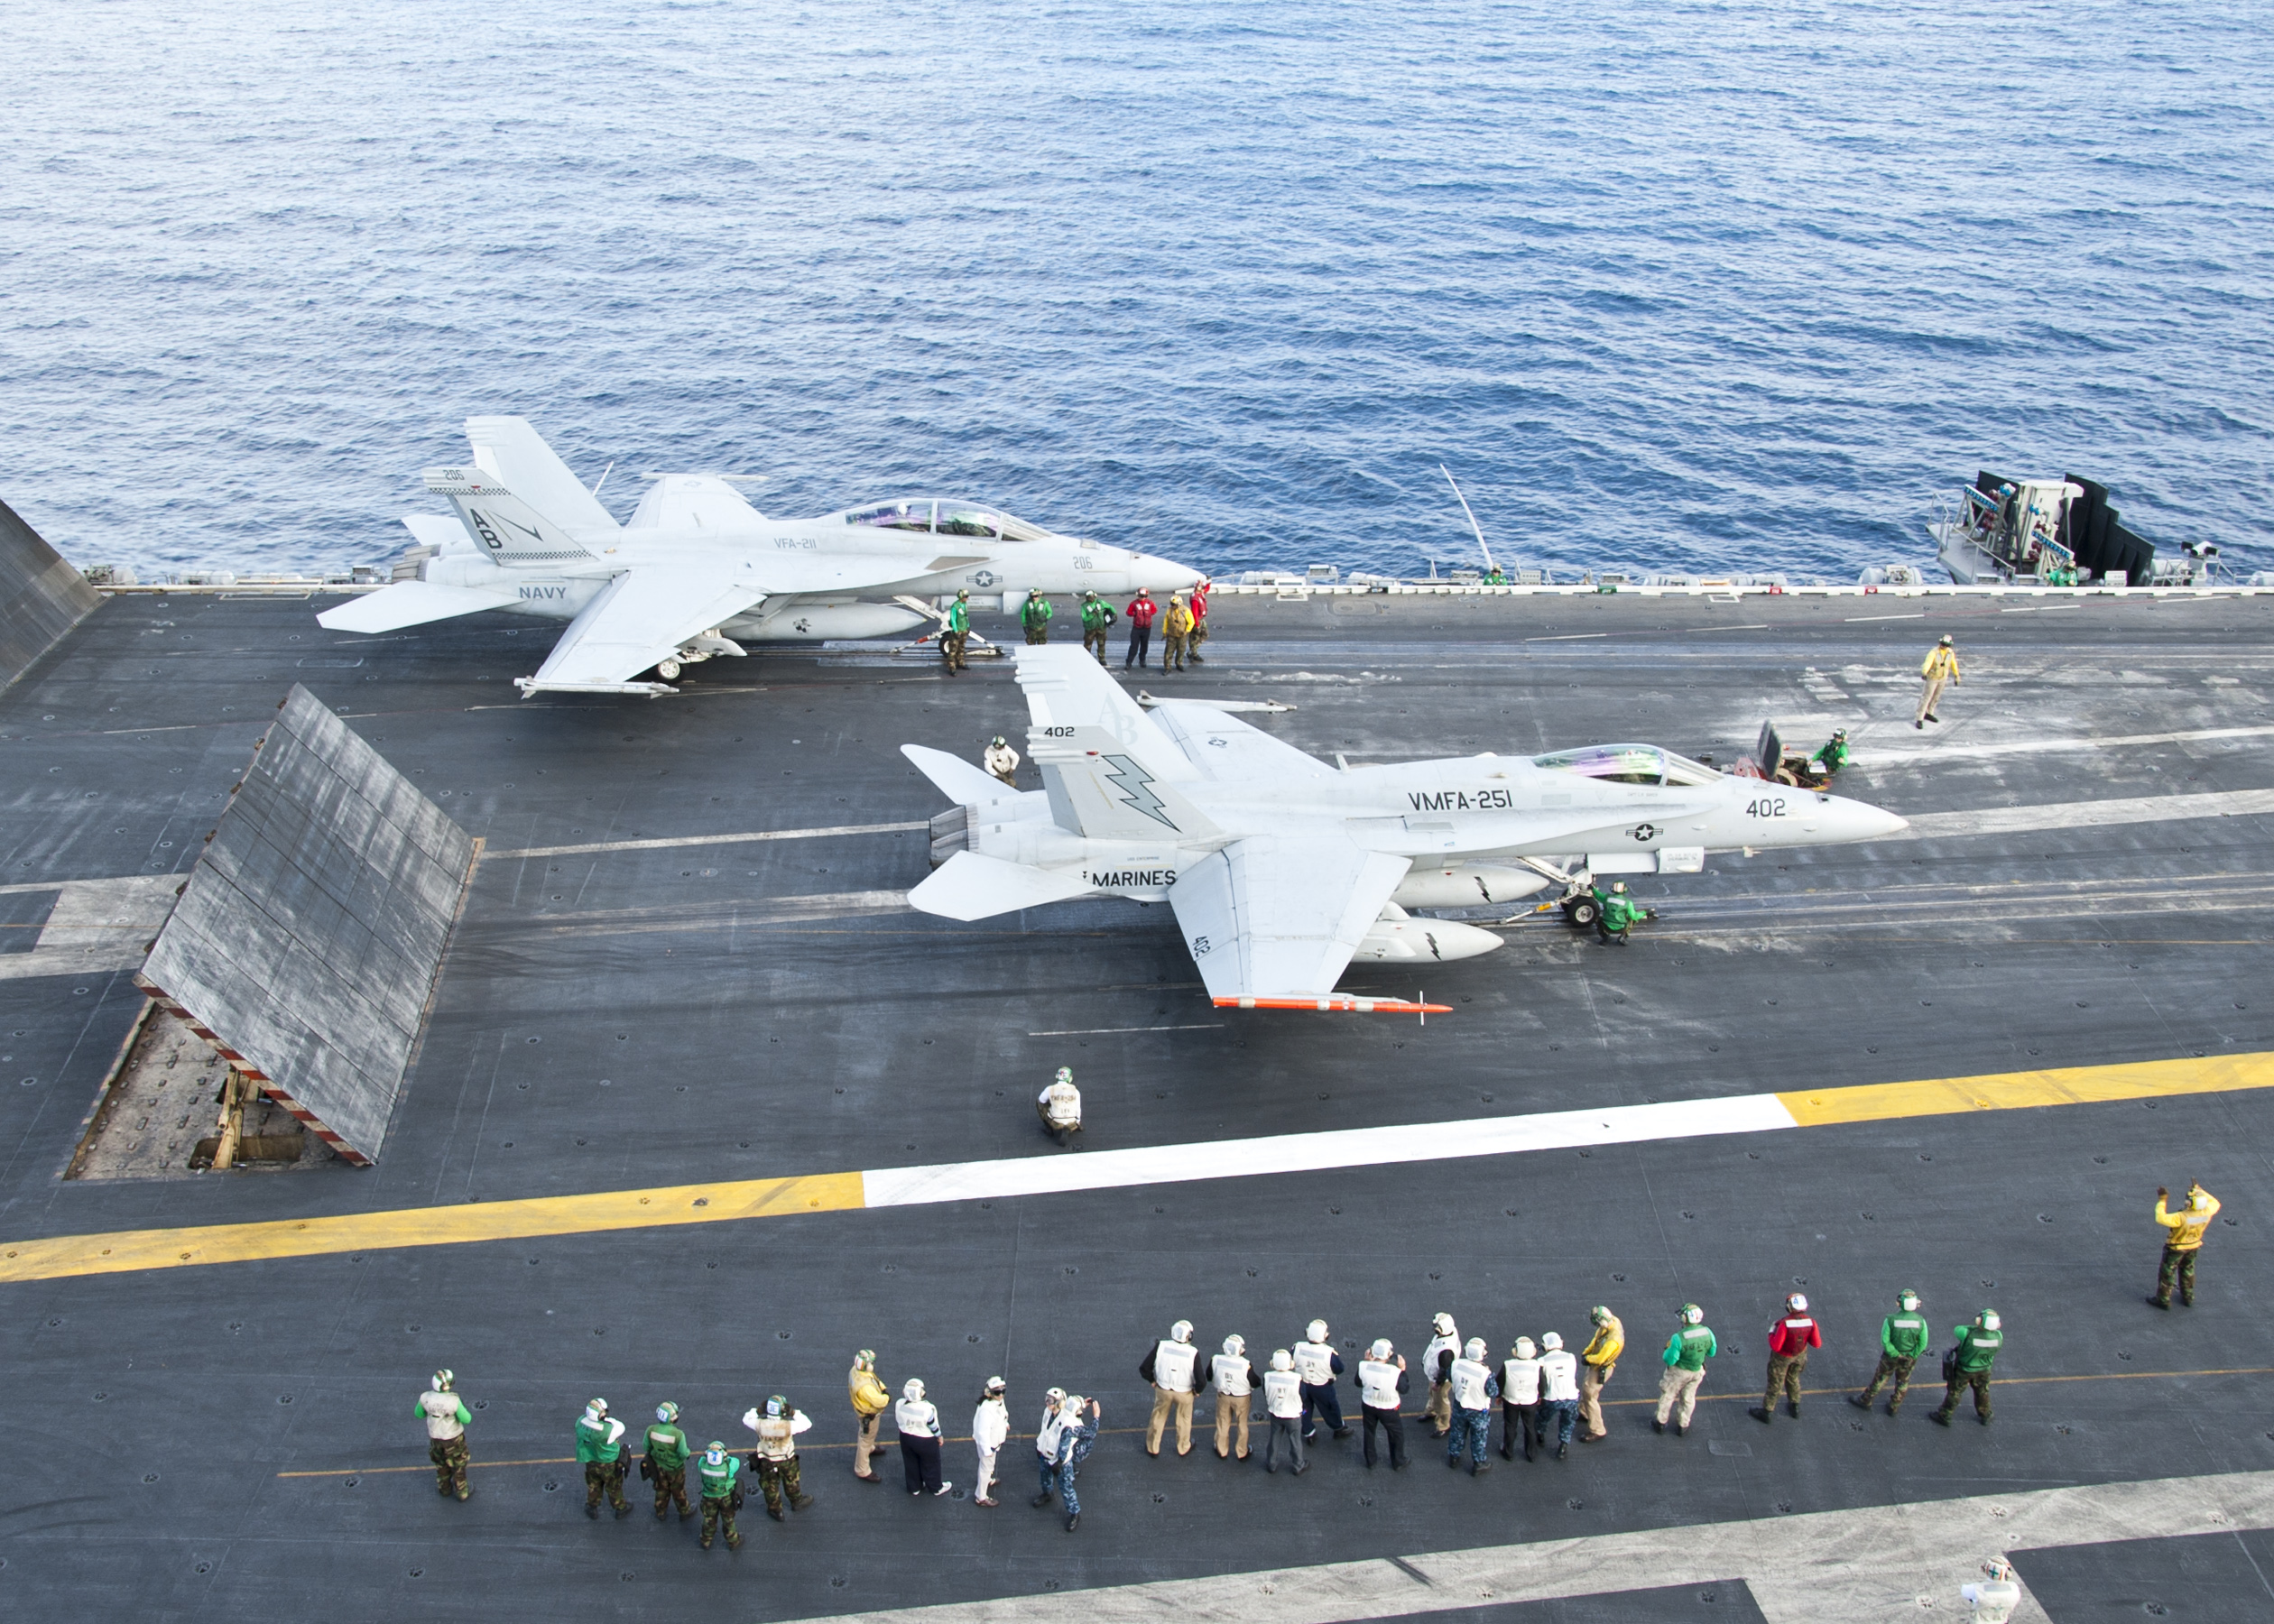 File:Flickr - Official U.S. Navy Imagery - Aircraft prepare to take off during flight